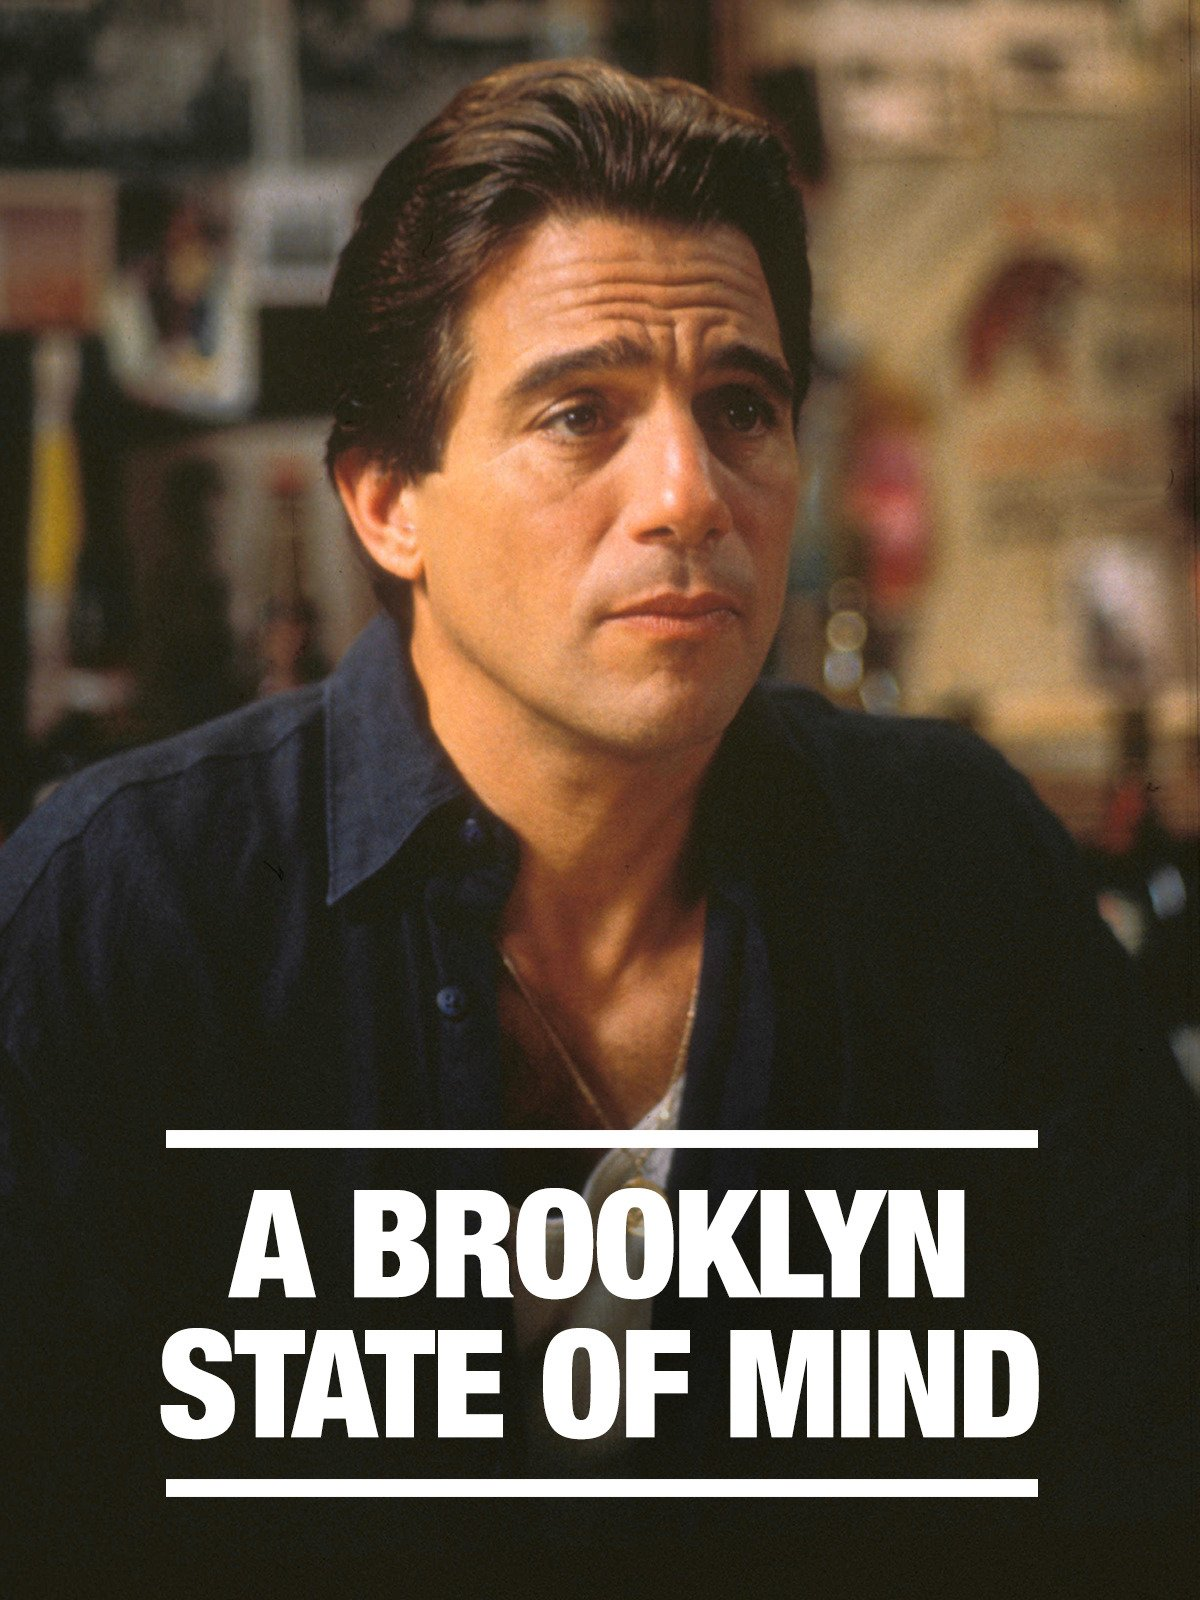 A Brooklyn State of Mind